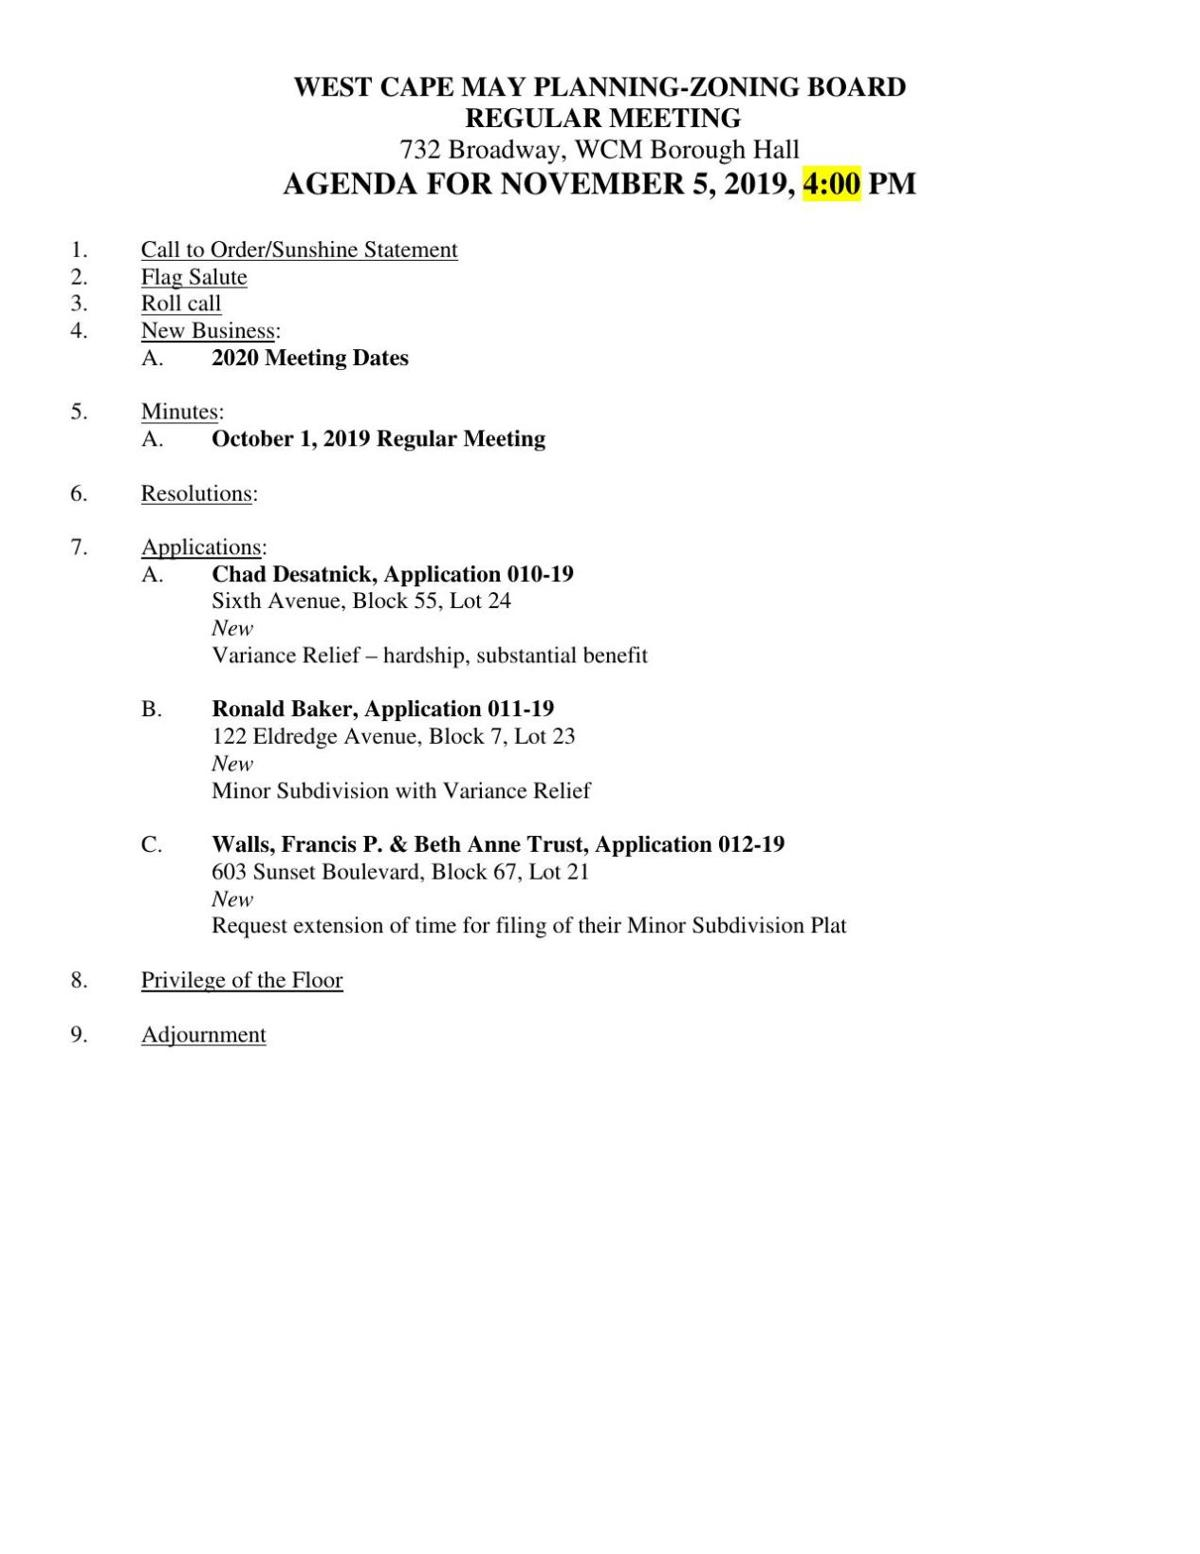 West Cape May Planning-Zoning Board Agenda Nov. 5, 2019